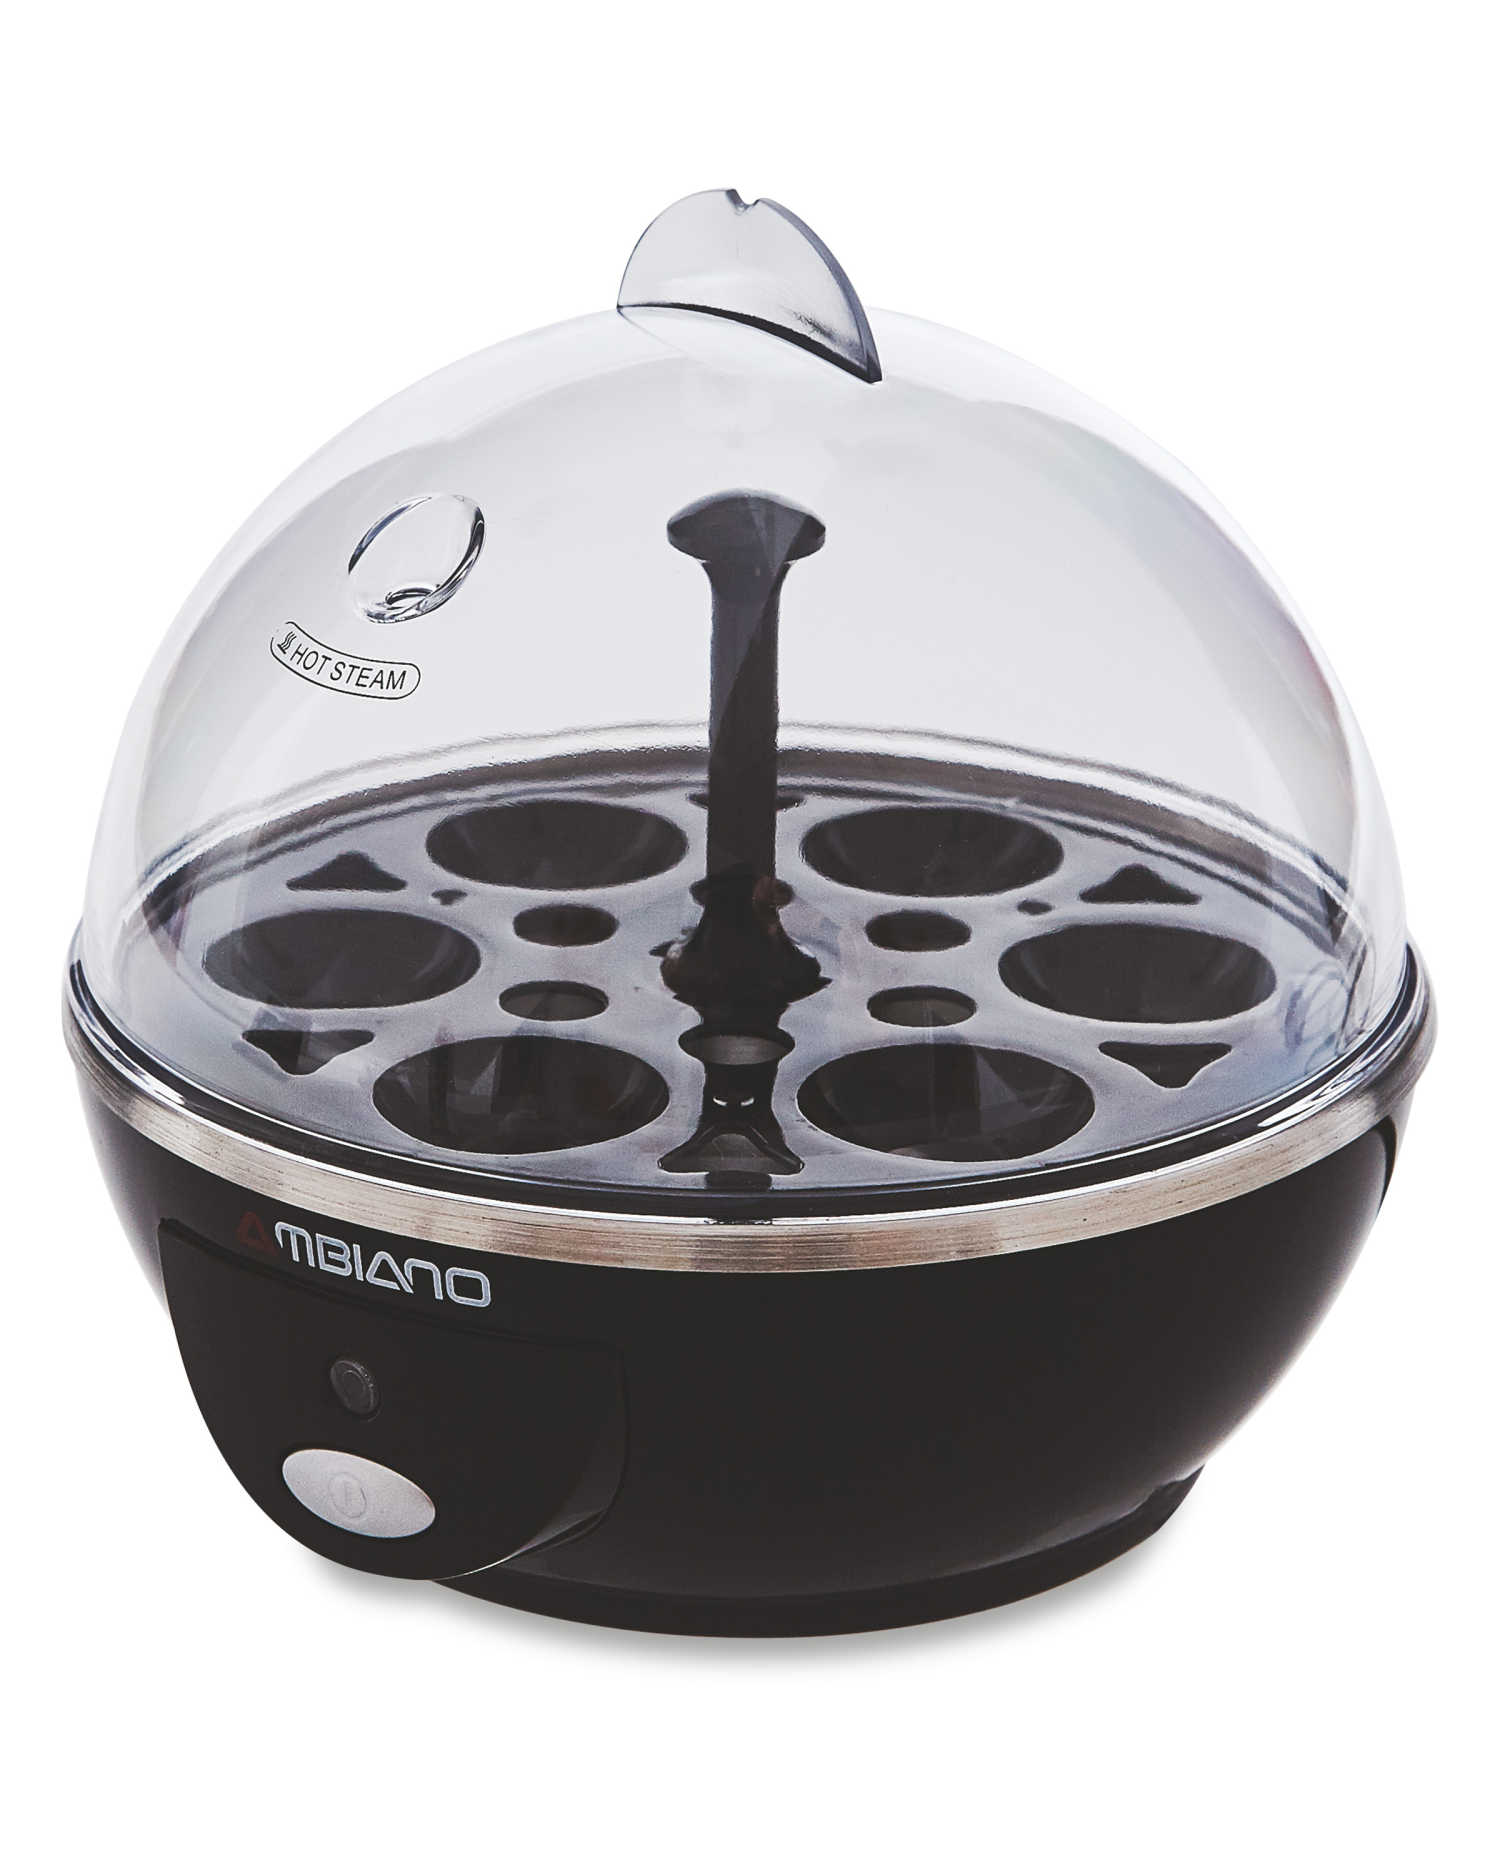 ...when you can get the Ambiano egg cooker for nearly half the price at Aldi